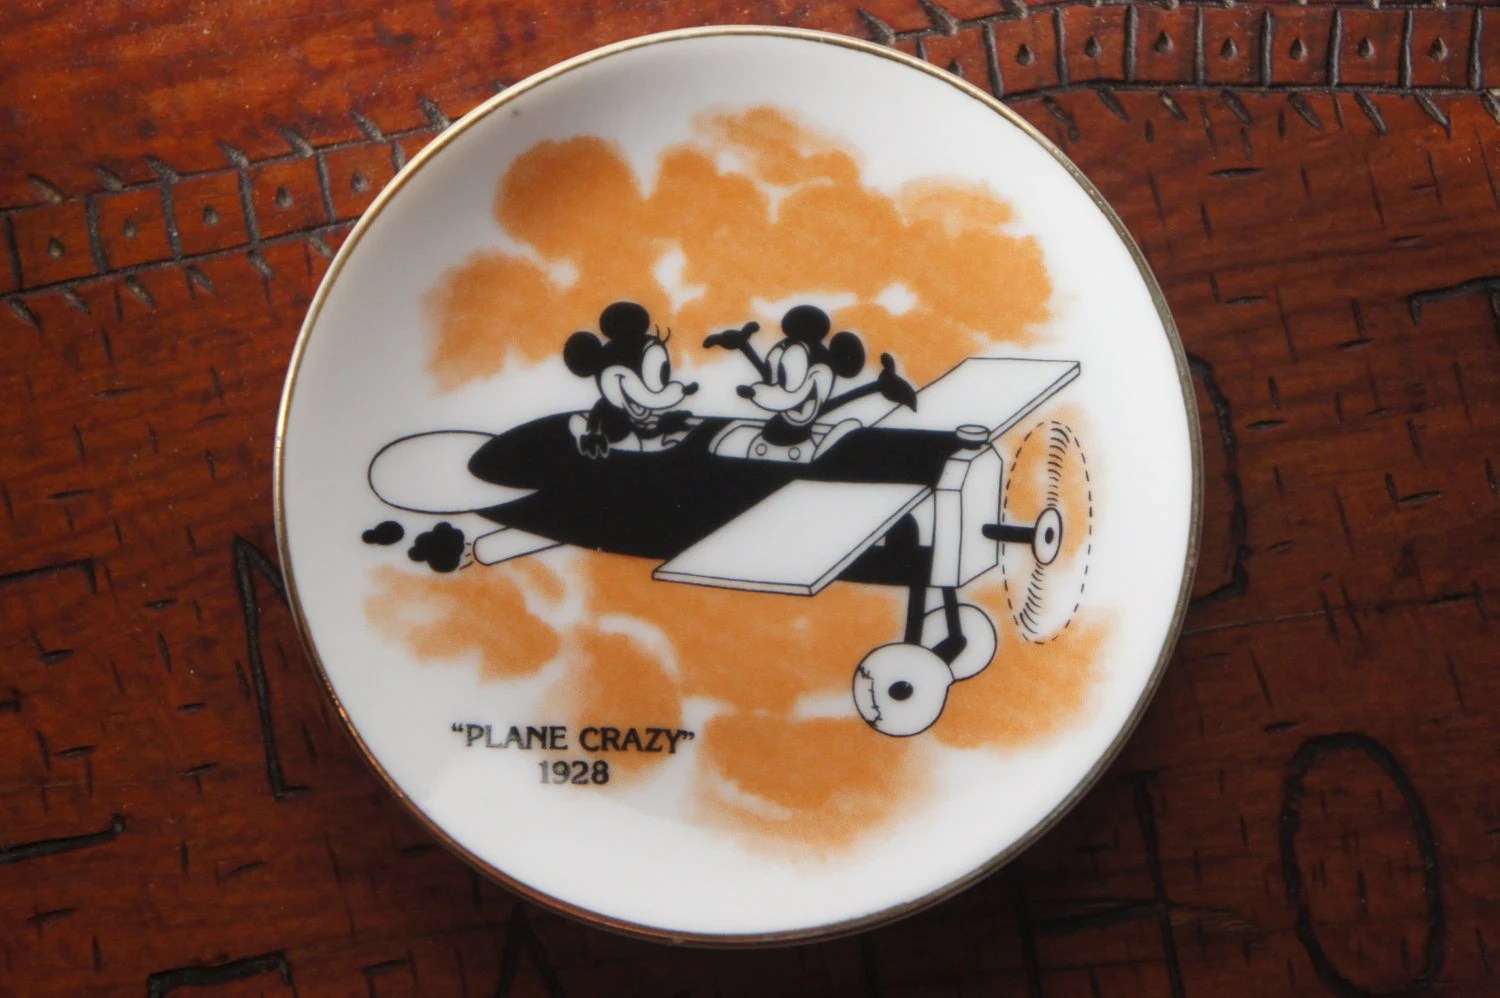 Plane Mickey Crazy Were